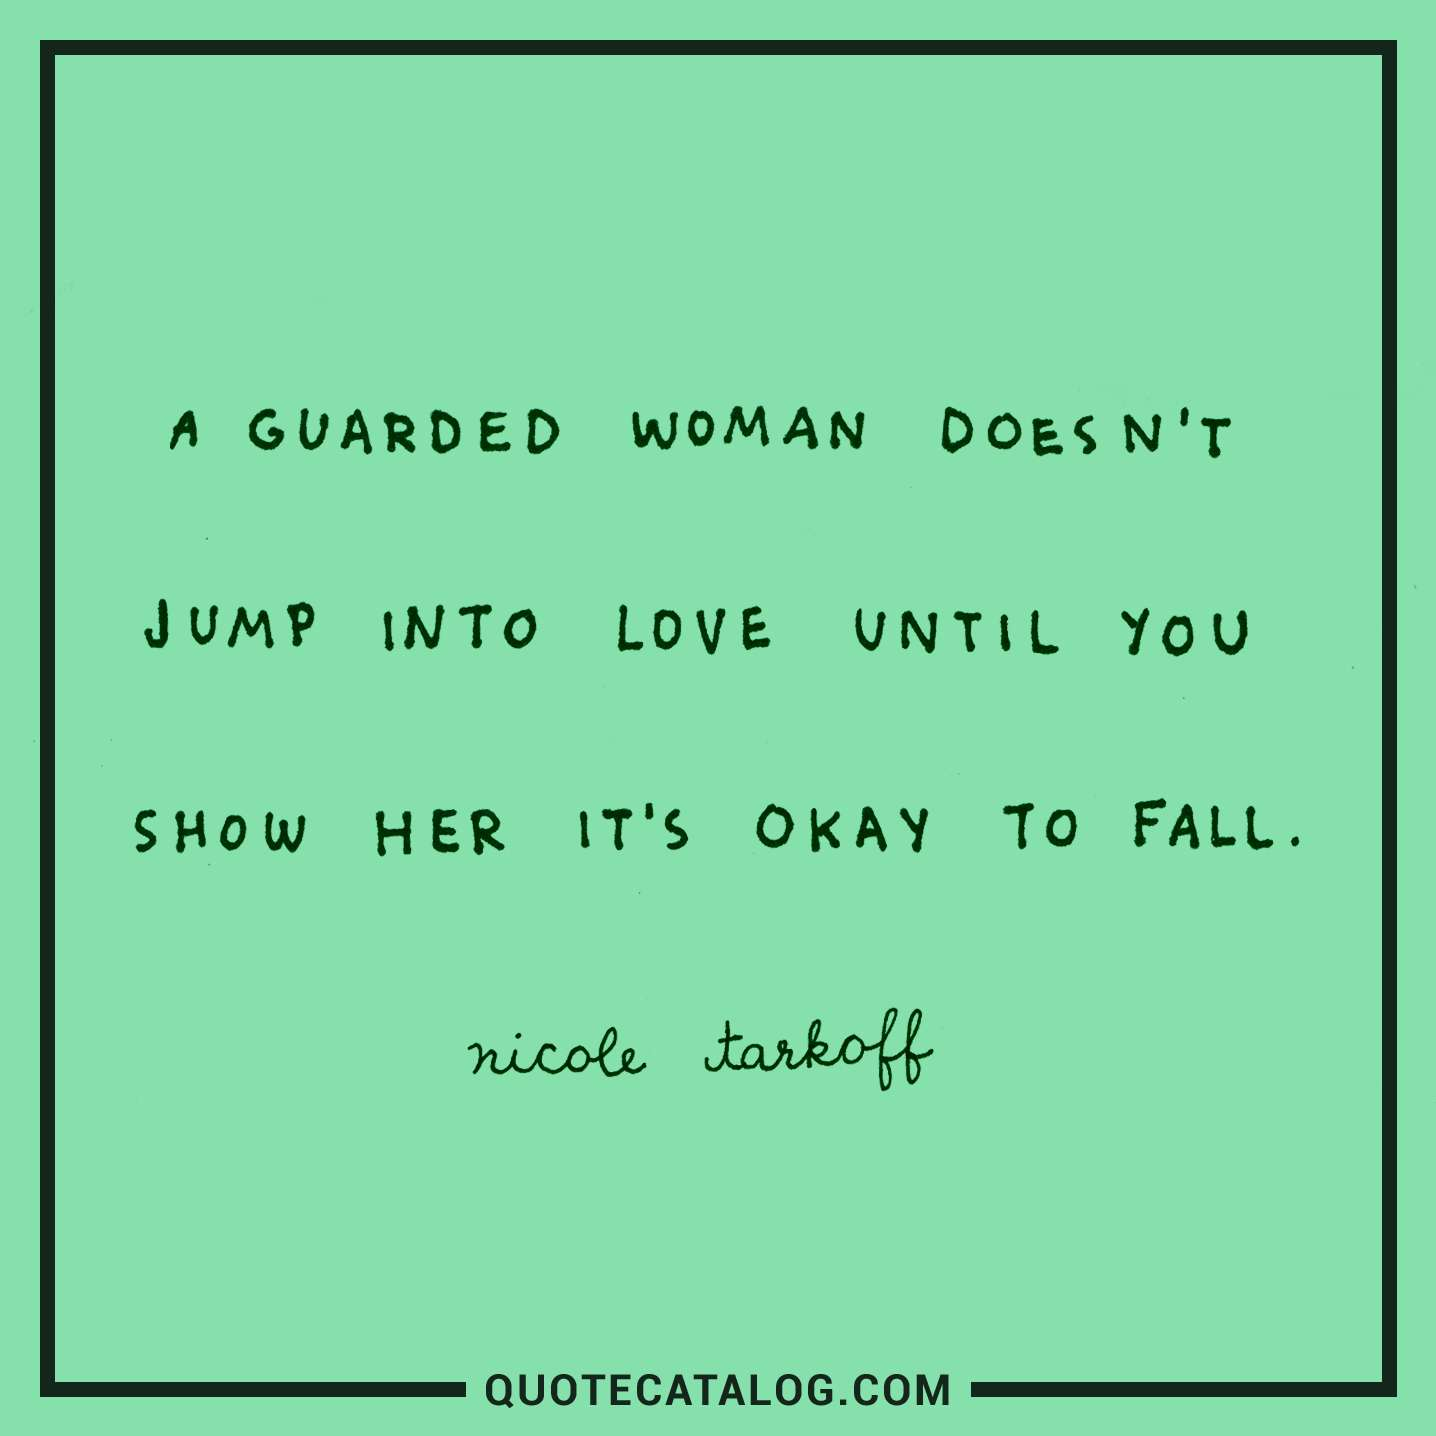 How To Love A Woman Quotes: A Guarded Woman Doesn't Jump Into